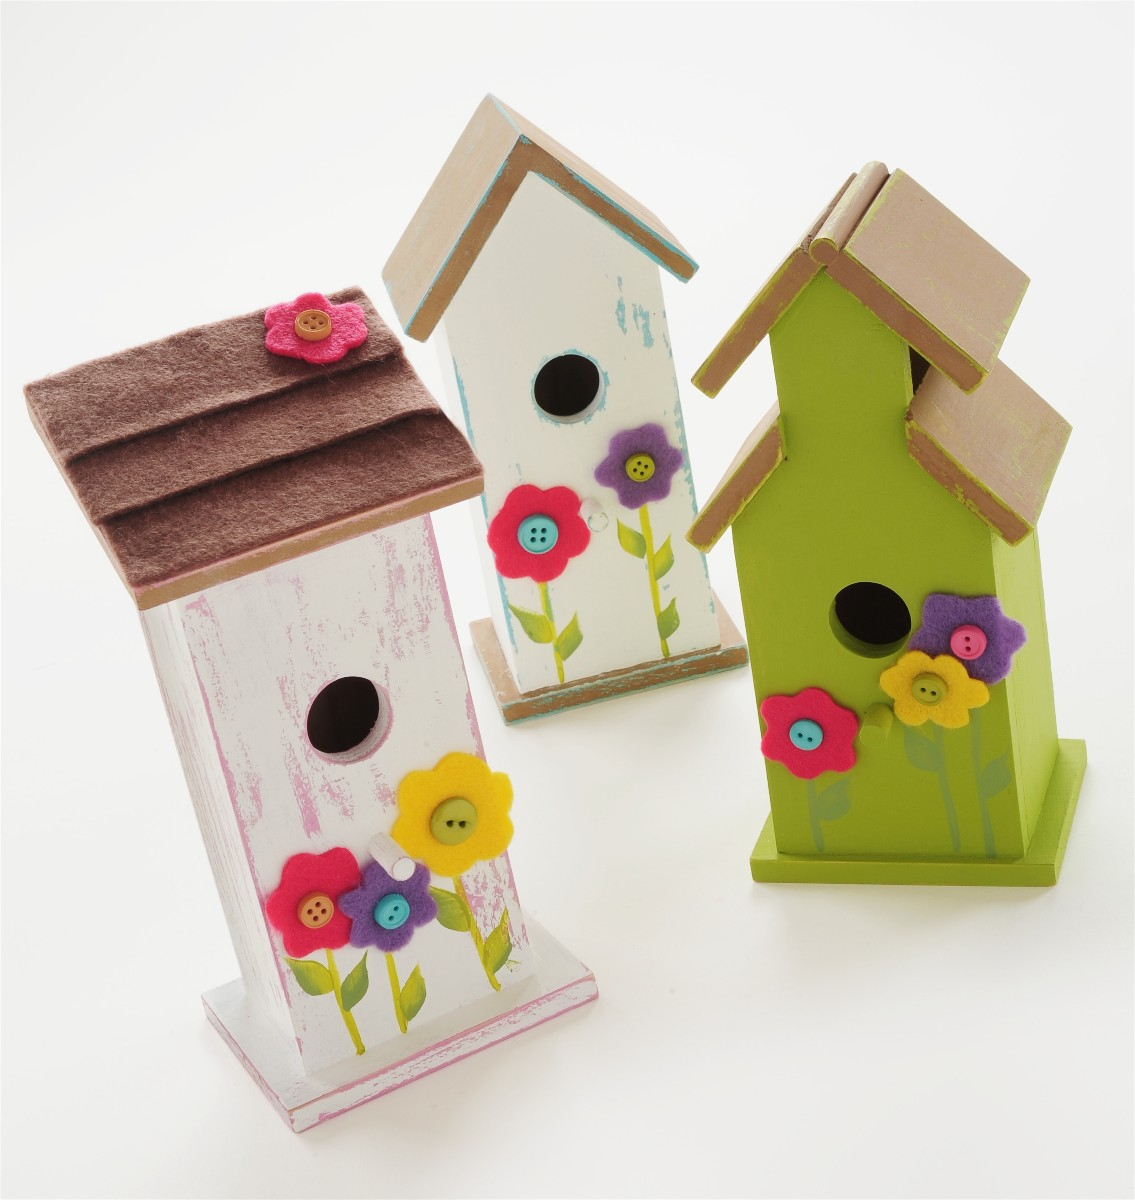 Painting Designs For Birdhouses Wood Barn Building Plans